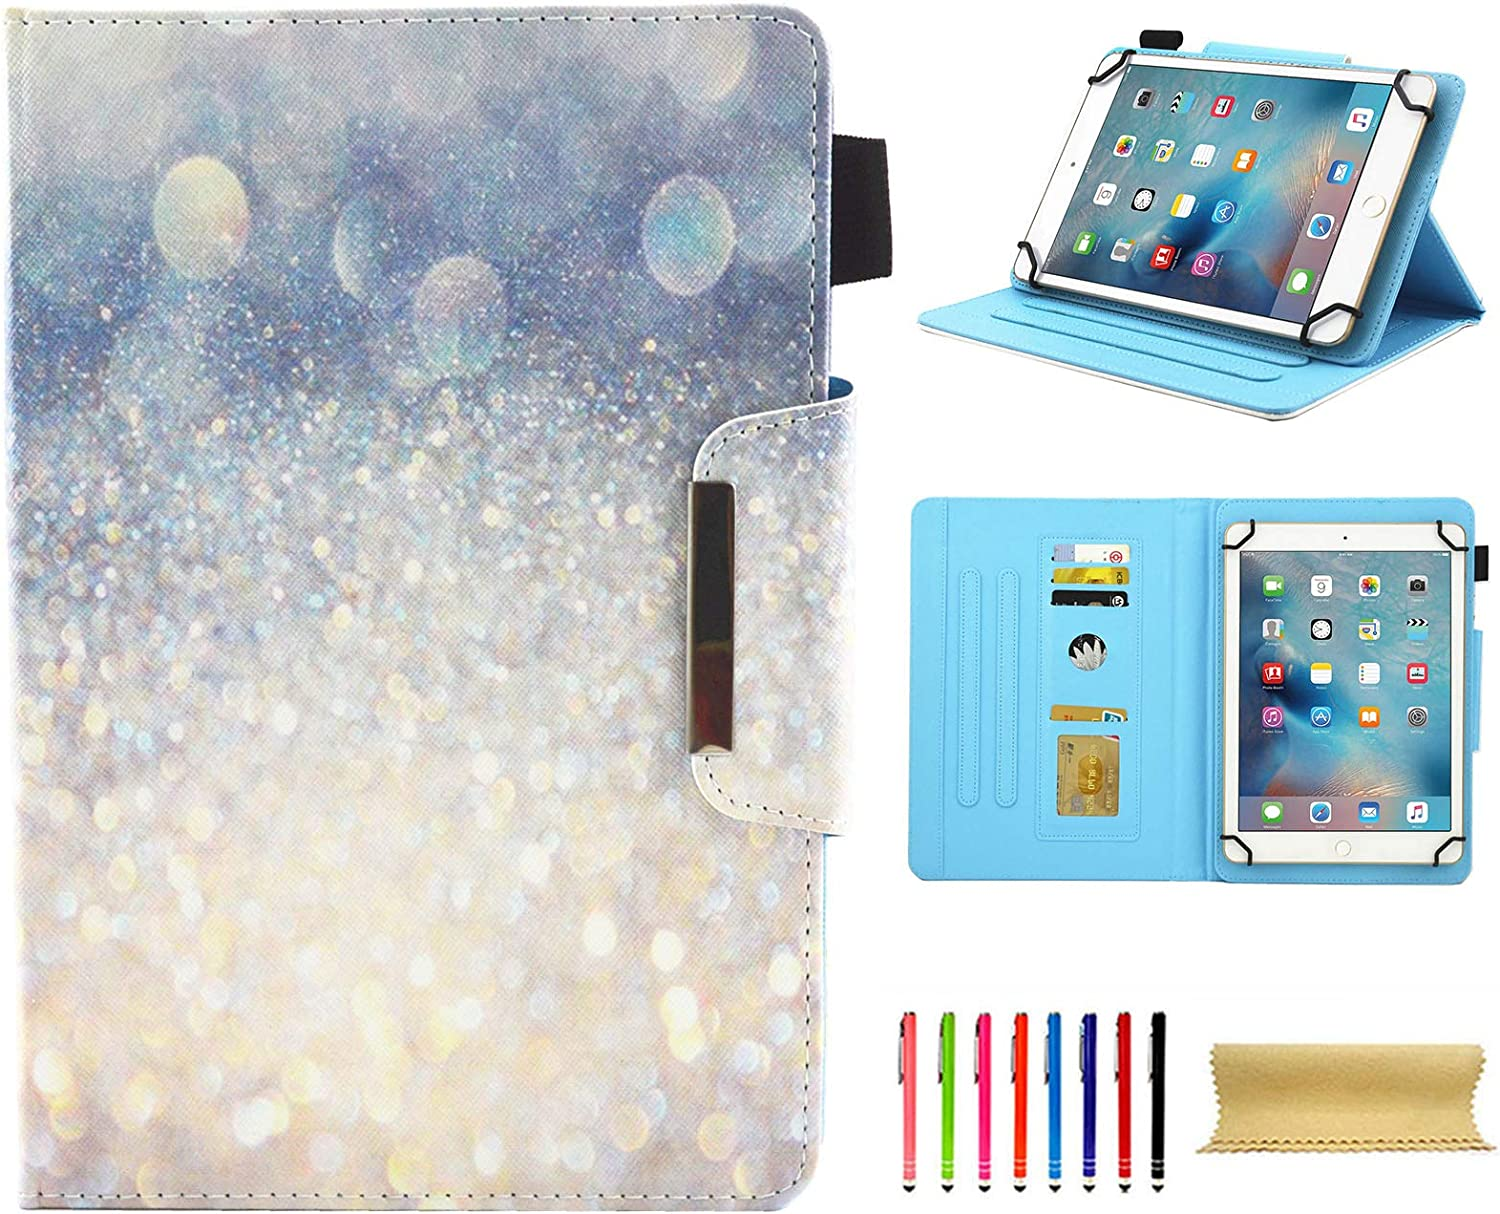 Universal Case for 7.0 Inch Tablet, Techcircle Slim PU Leather Stand Folio Wallet Case for Samsung Galaxy Tab E Lite, Acer Iconia One 7, Google/RCA and More 7-inch Android Tablet, Silver Sand